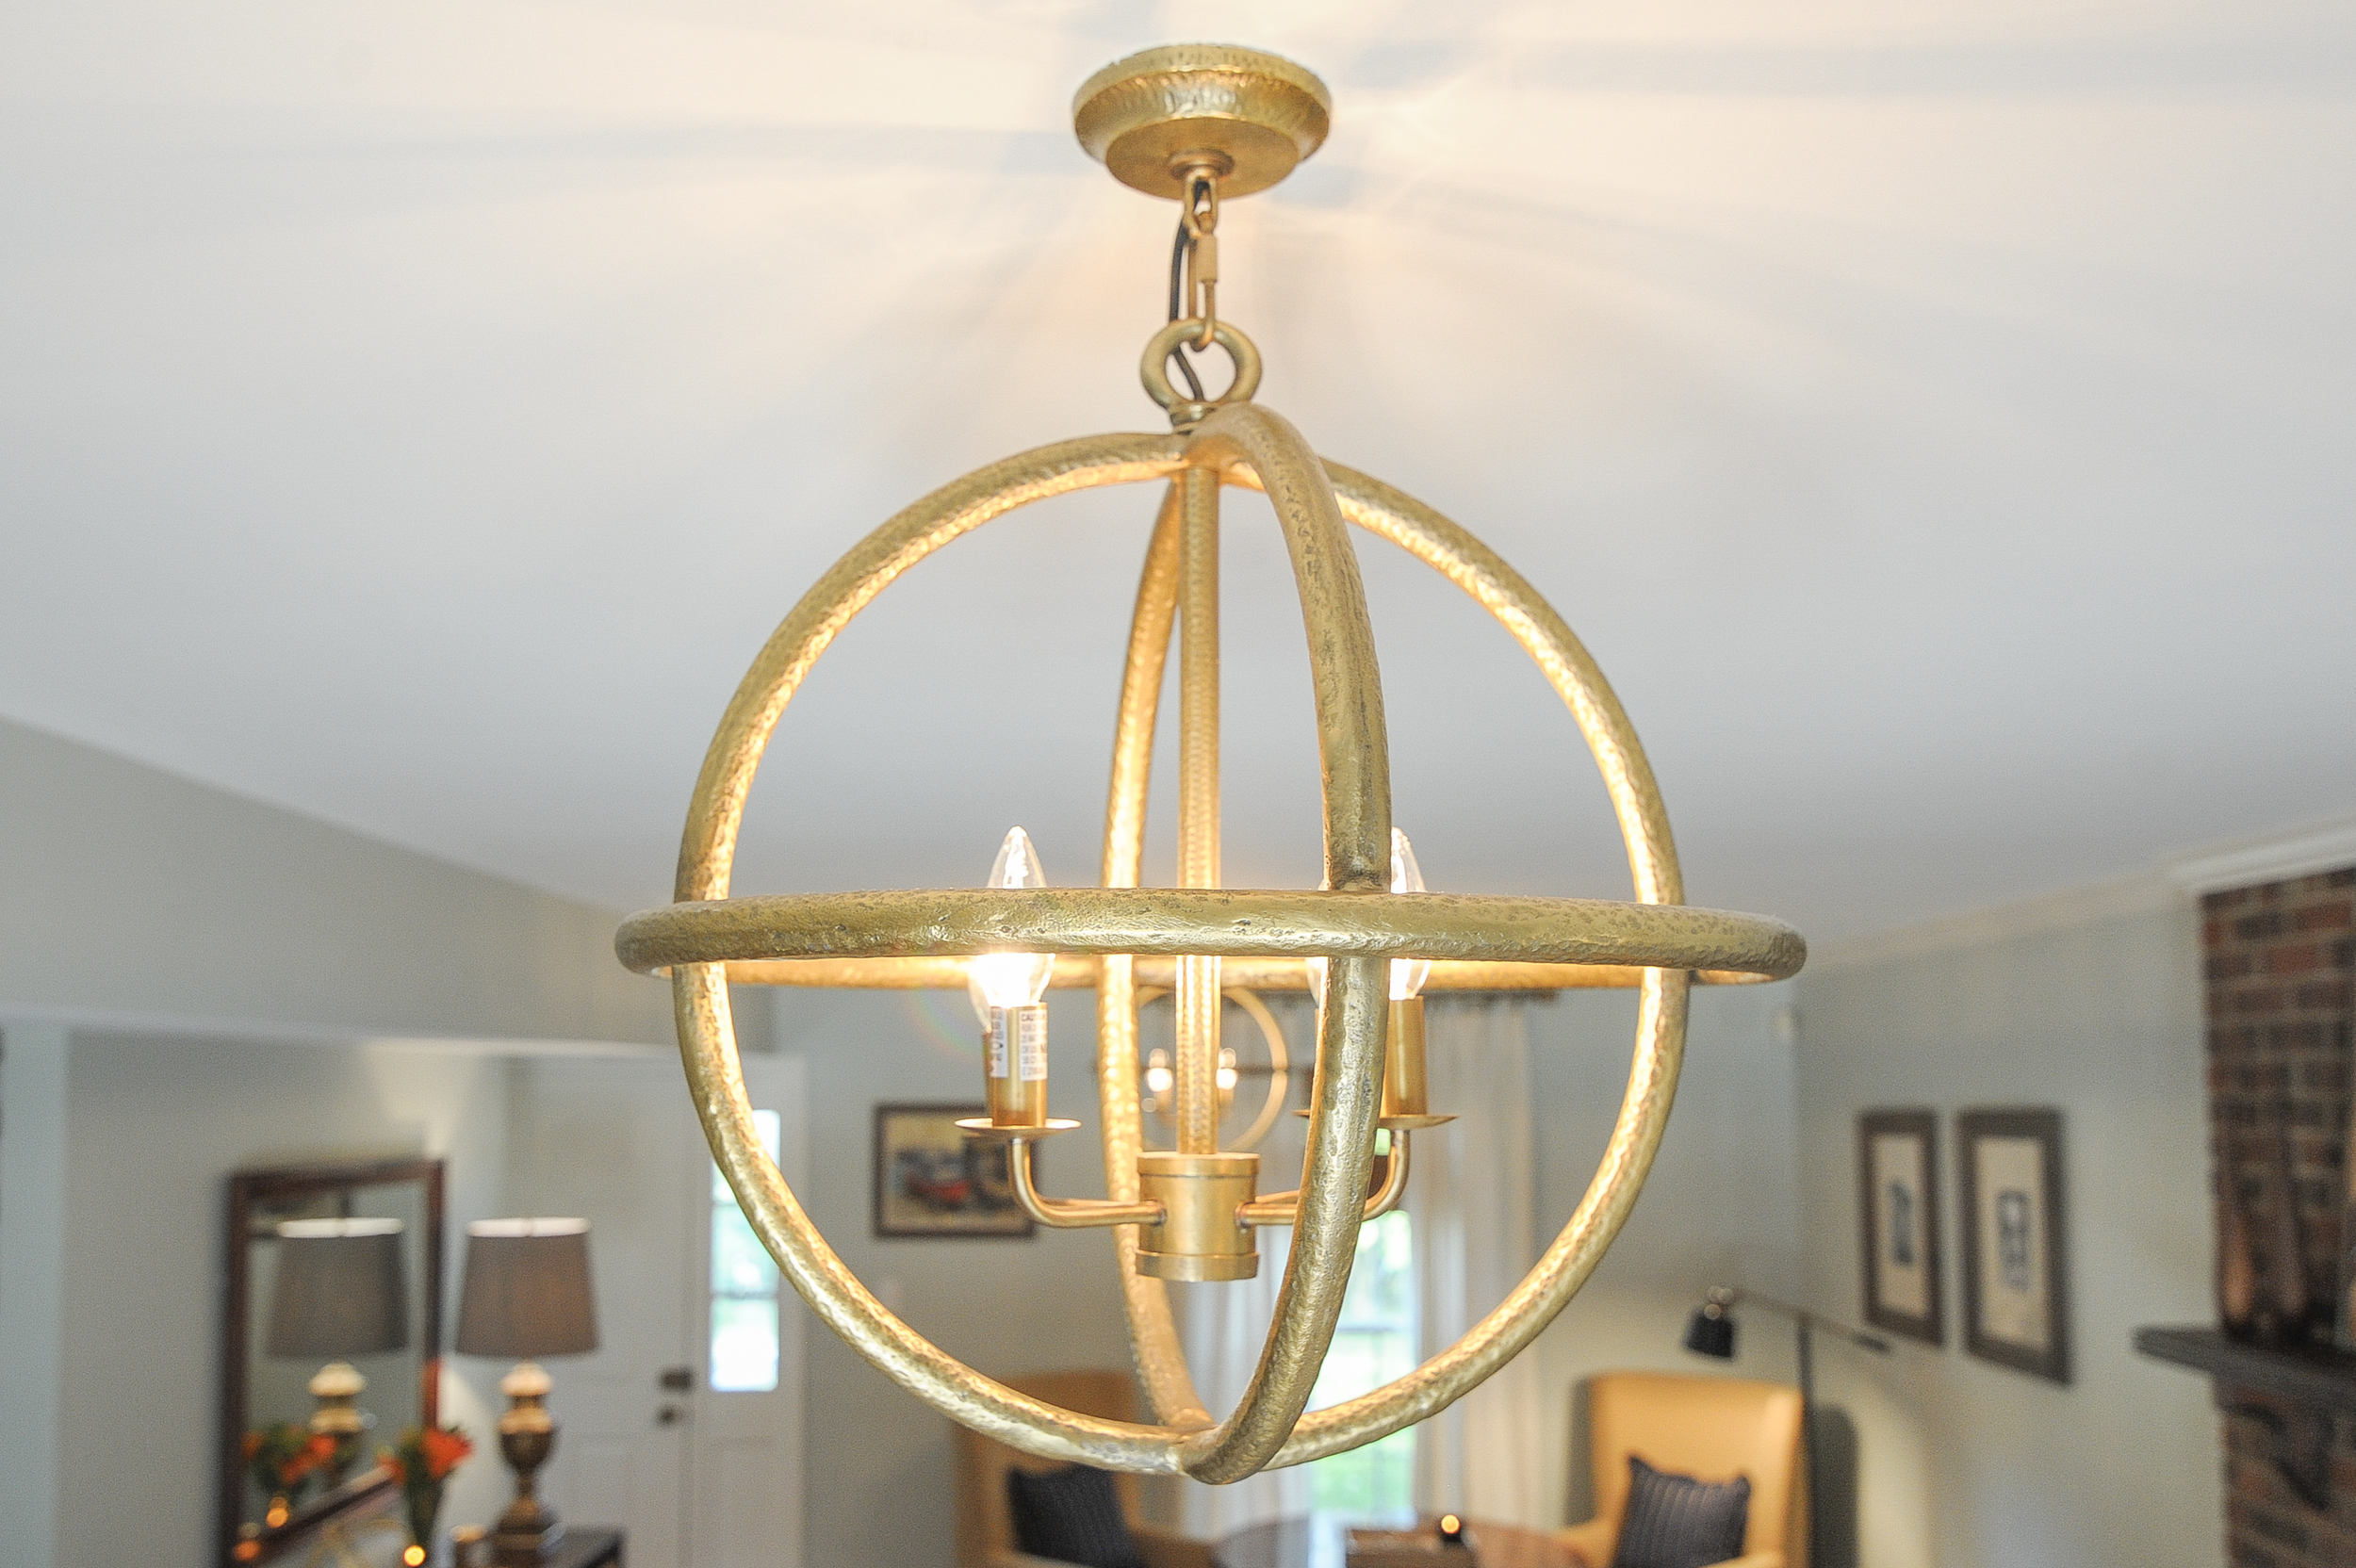 Artful Interiors – Bachelor Pad - Living Room Globe Light